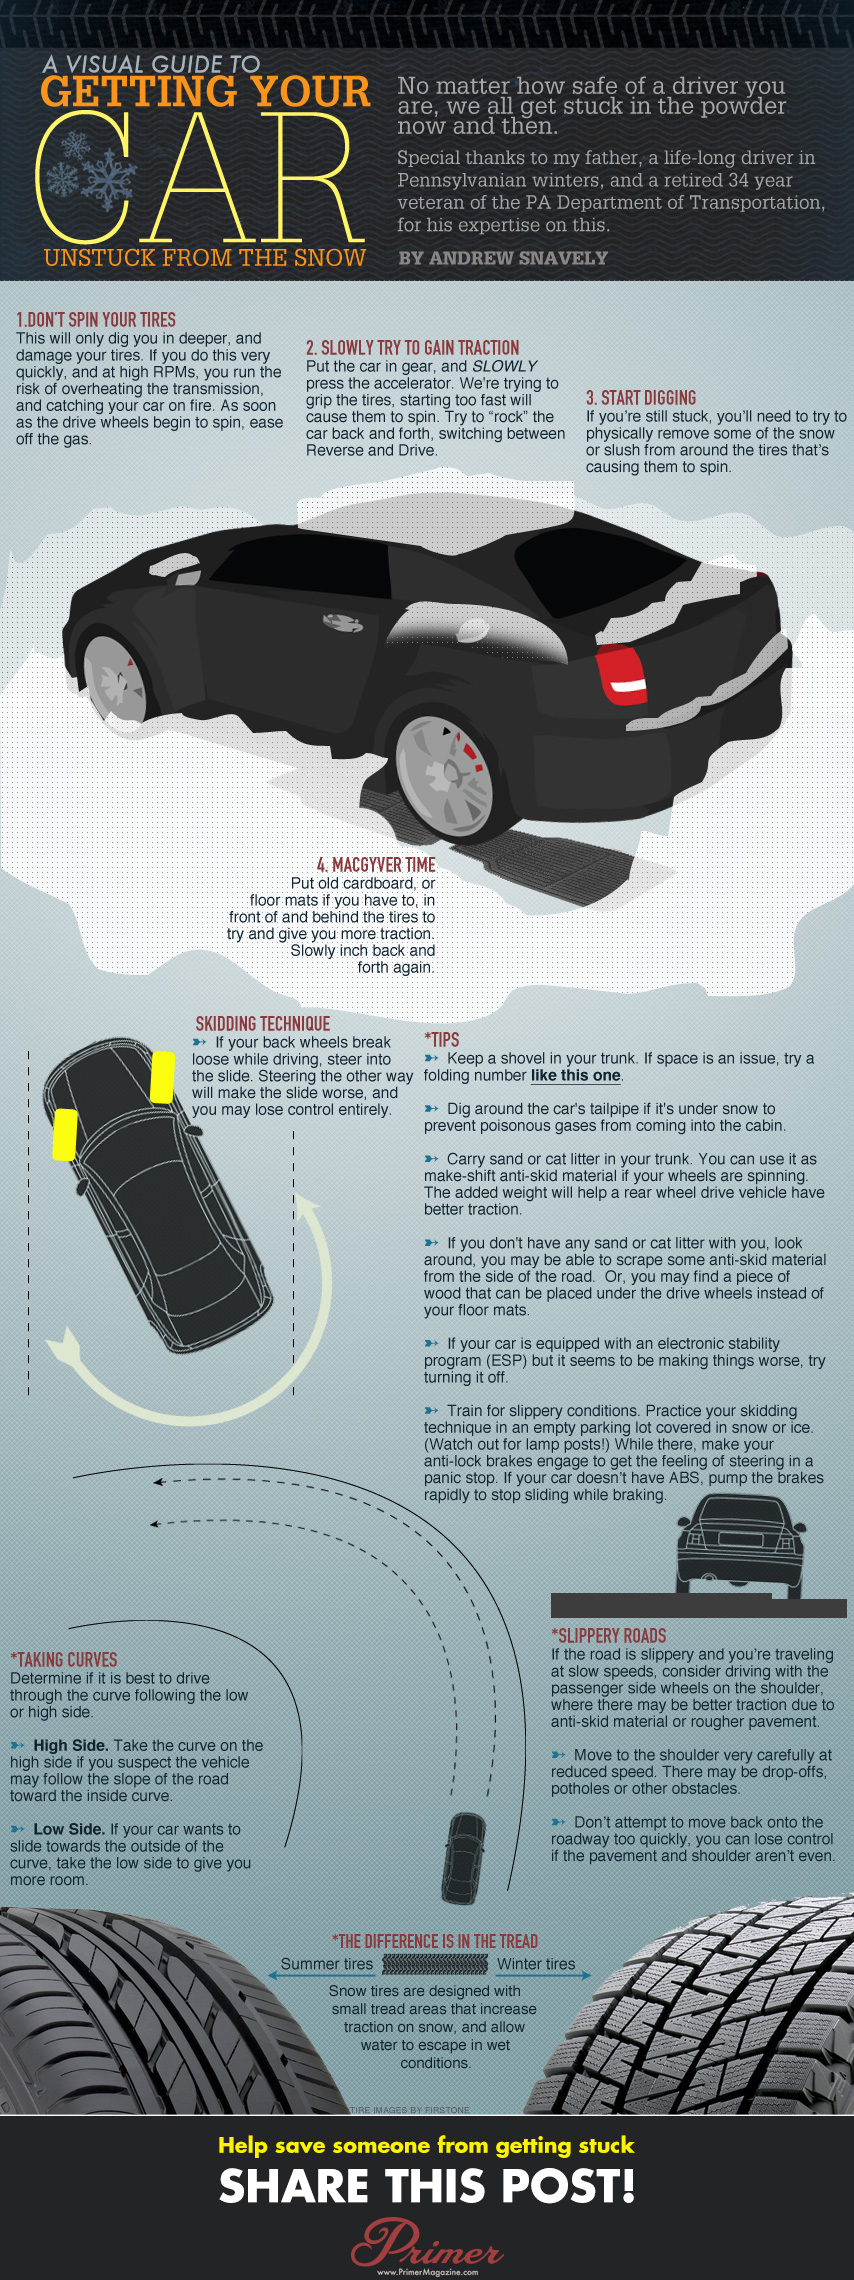 Getting Your Car unstuck from the snow infographic